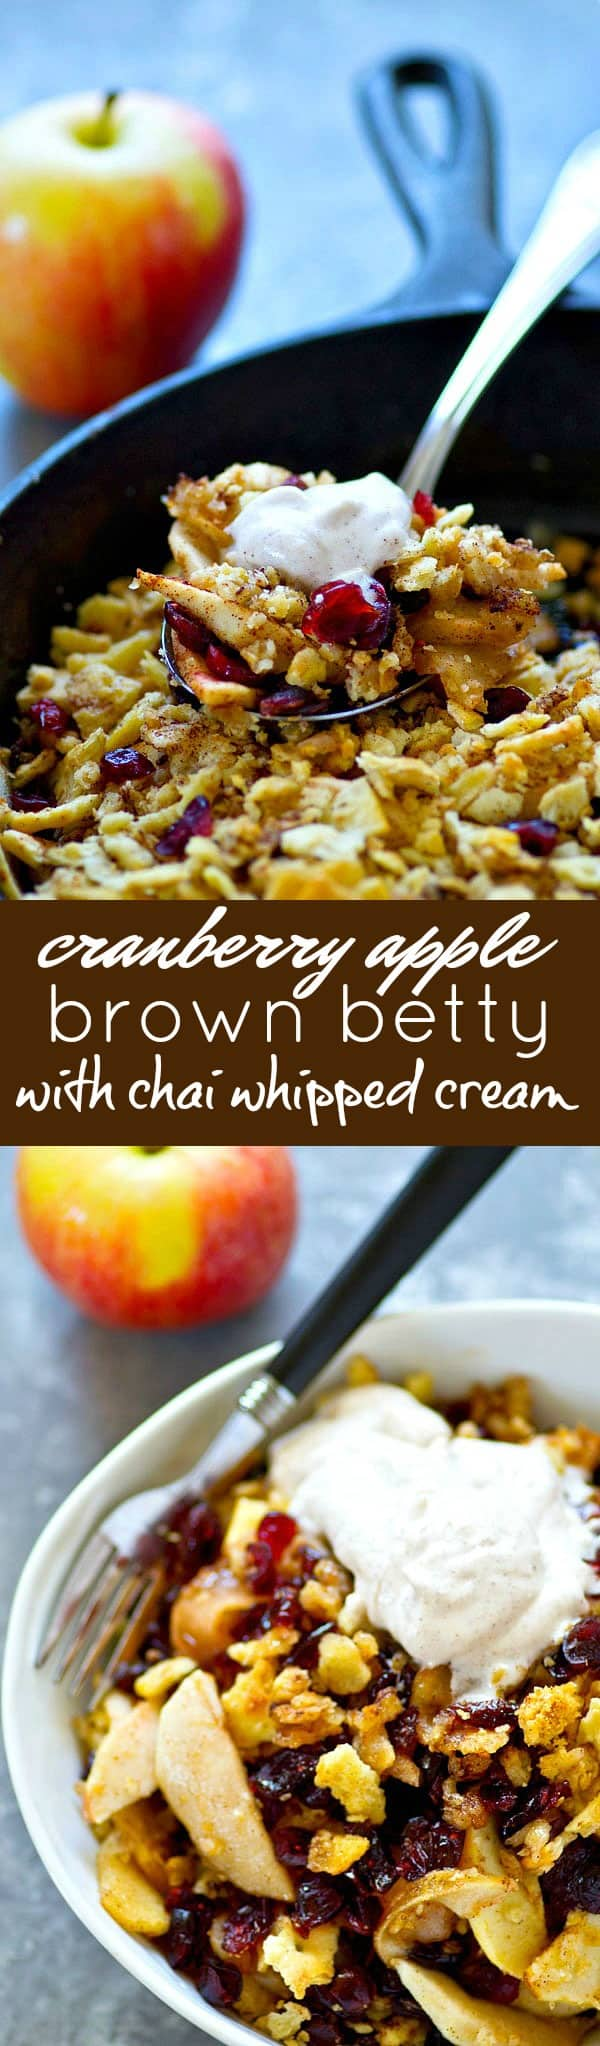 A sweet apple cranberry filling is a match made in heaven with a buttery spiced cracker topping and piles of chai whipped cream on top in this classic apple brown betty!